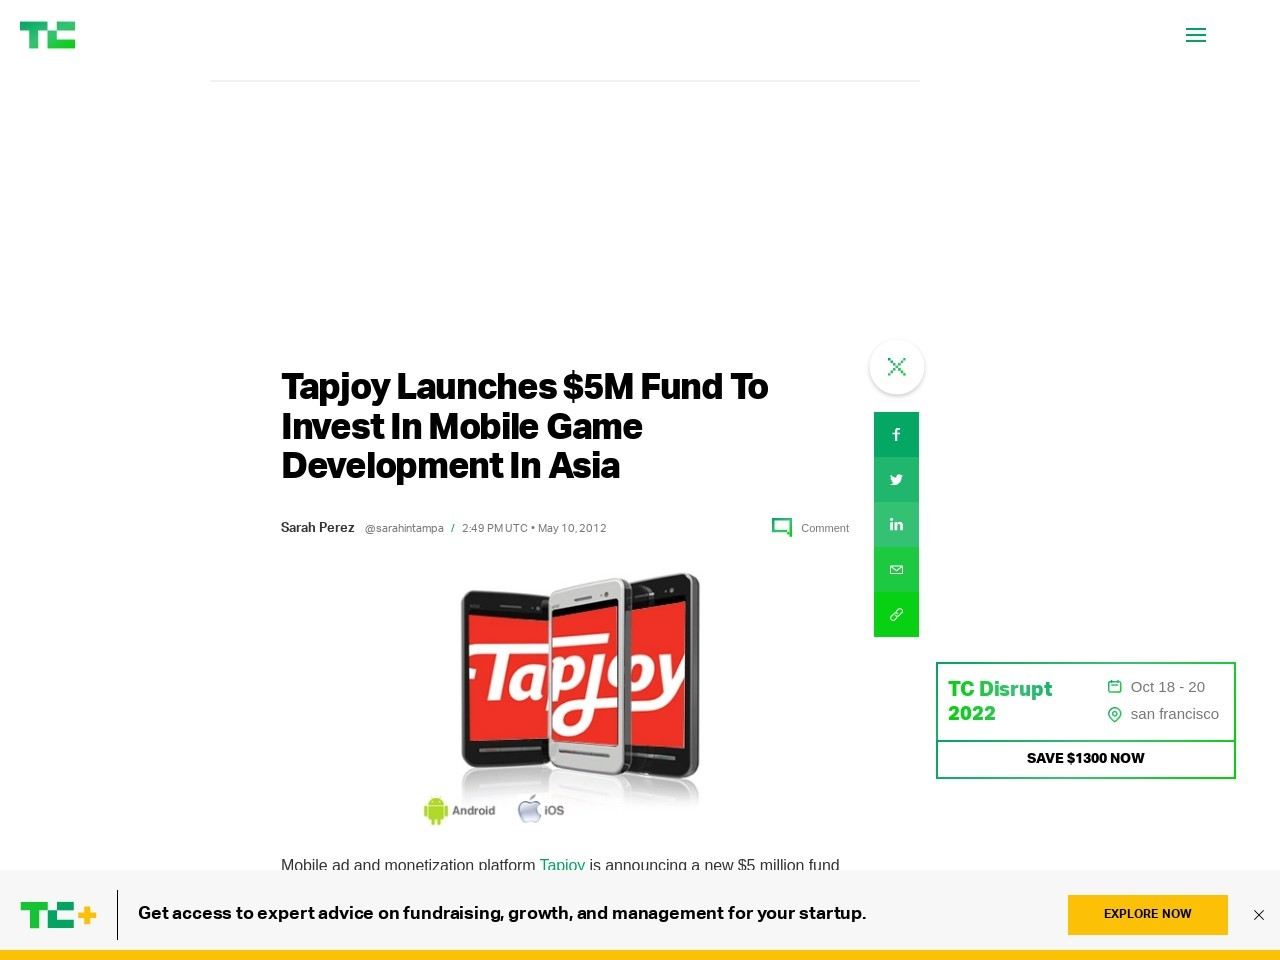 Tapjoy Launches $5M Fund To Invest In Mobile Game Development In Asia